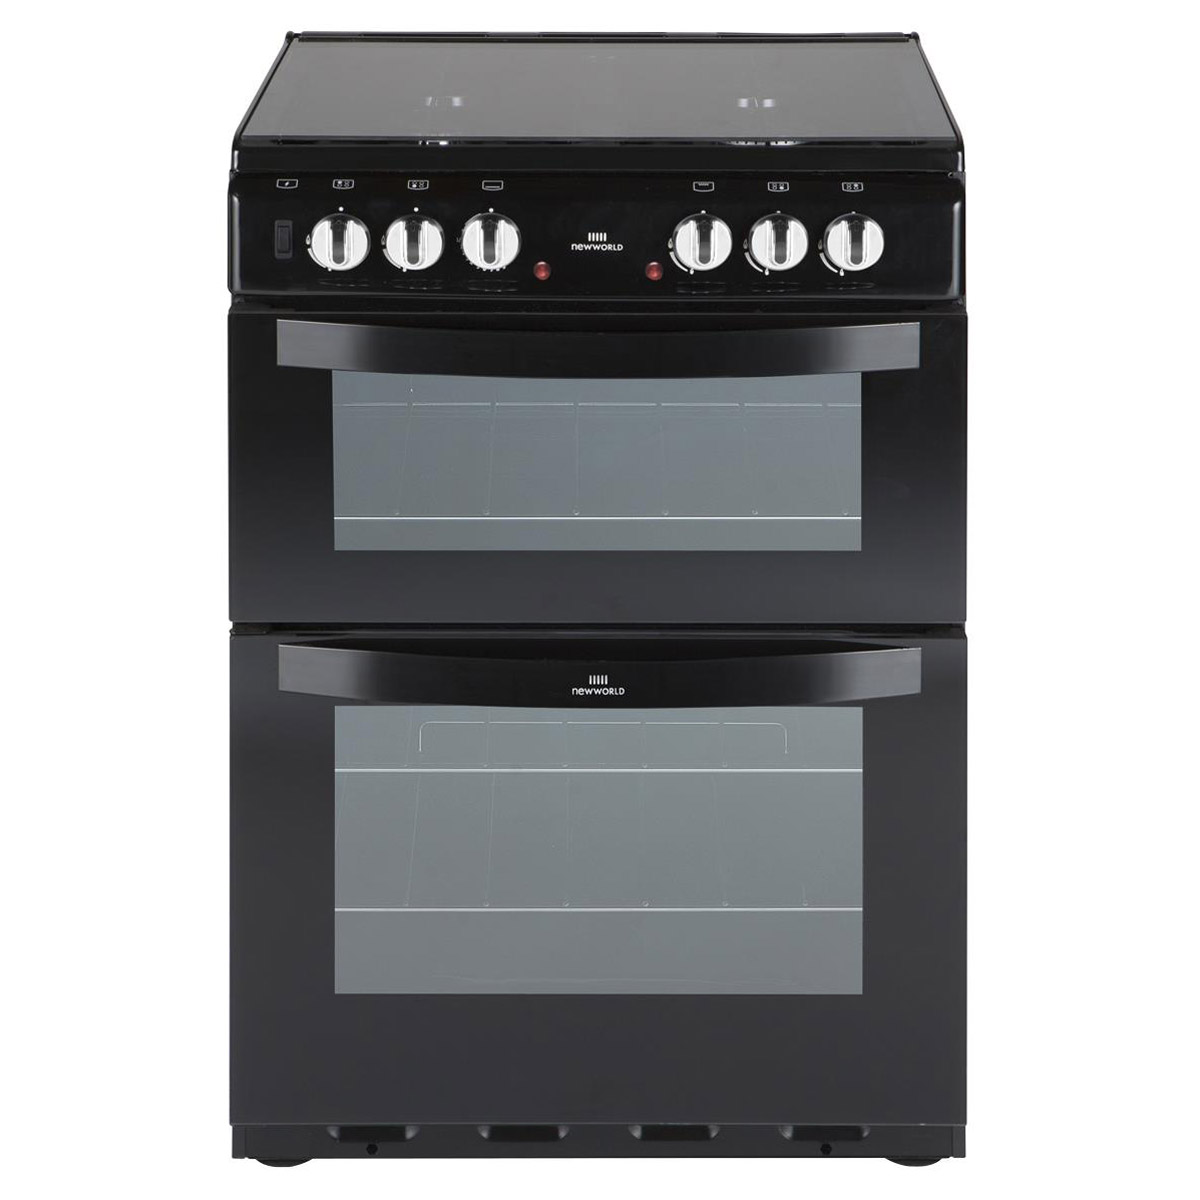 smeg double oven wiring diagram harbor breeze fan diagrams new world nw601dfdolbk 60cm dual fuel cooker in black